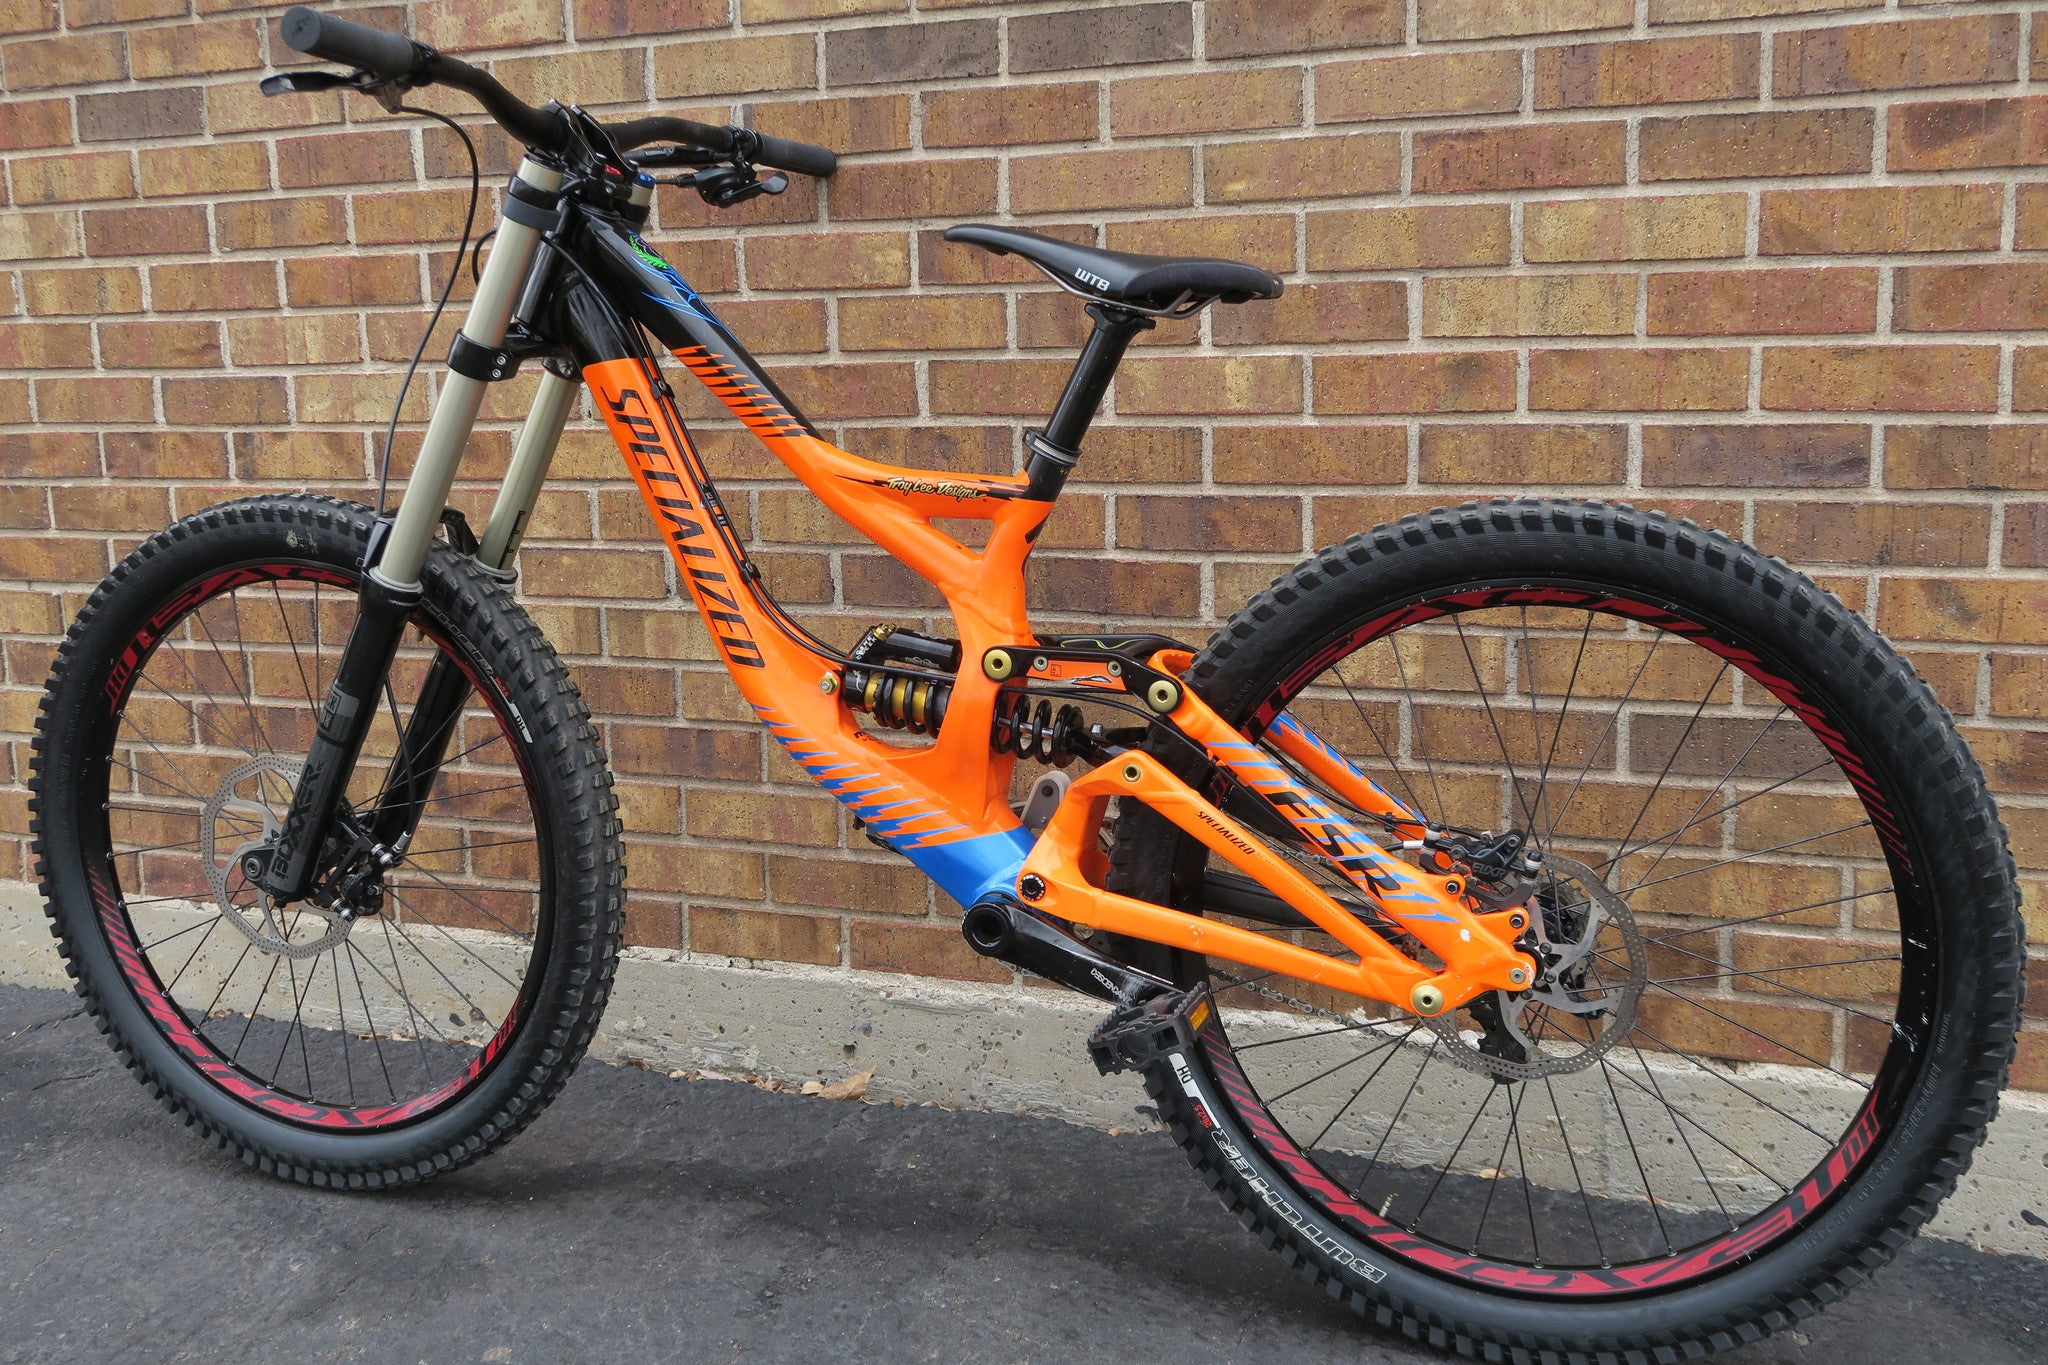 2012 SPECIALIZED DEMO 8 TROY LEE DESIGNS Limited Edition